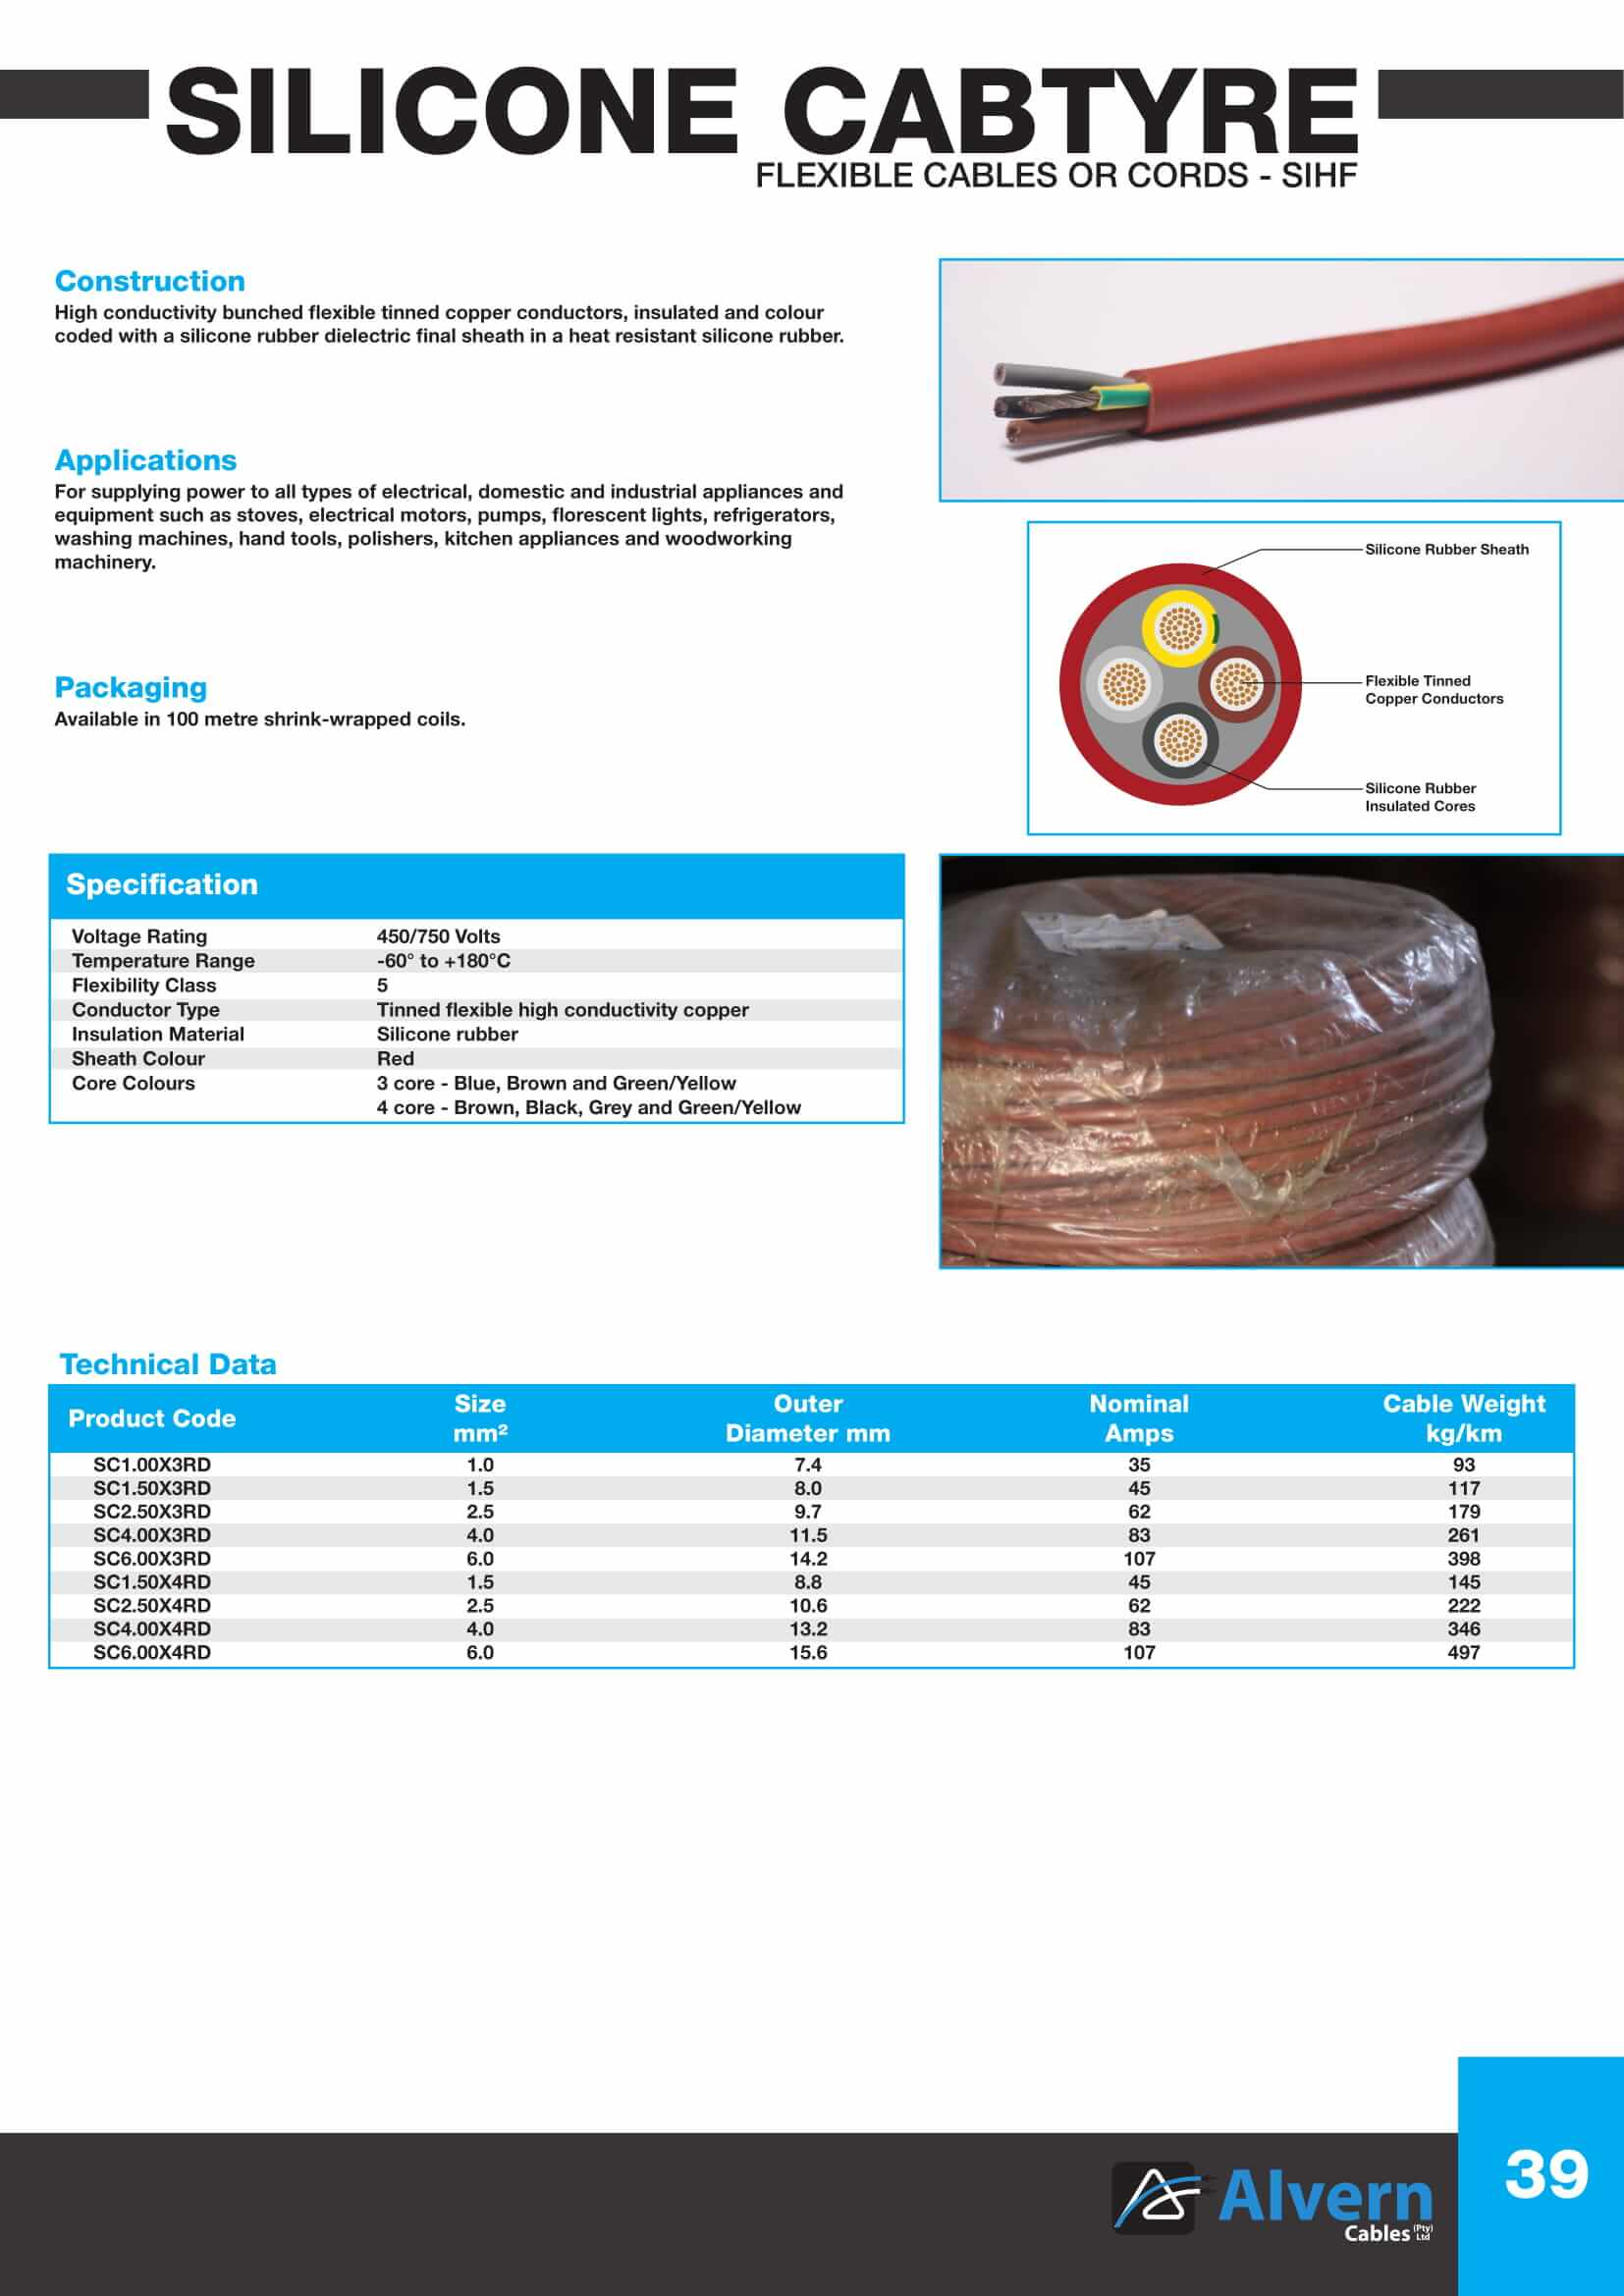 silicone cabtyre